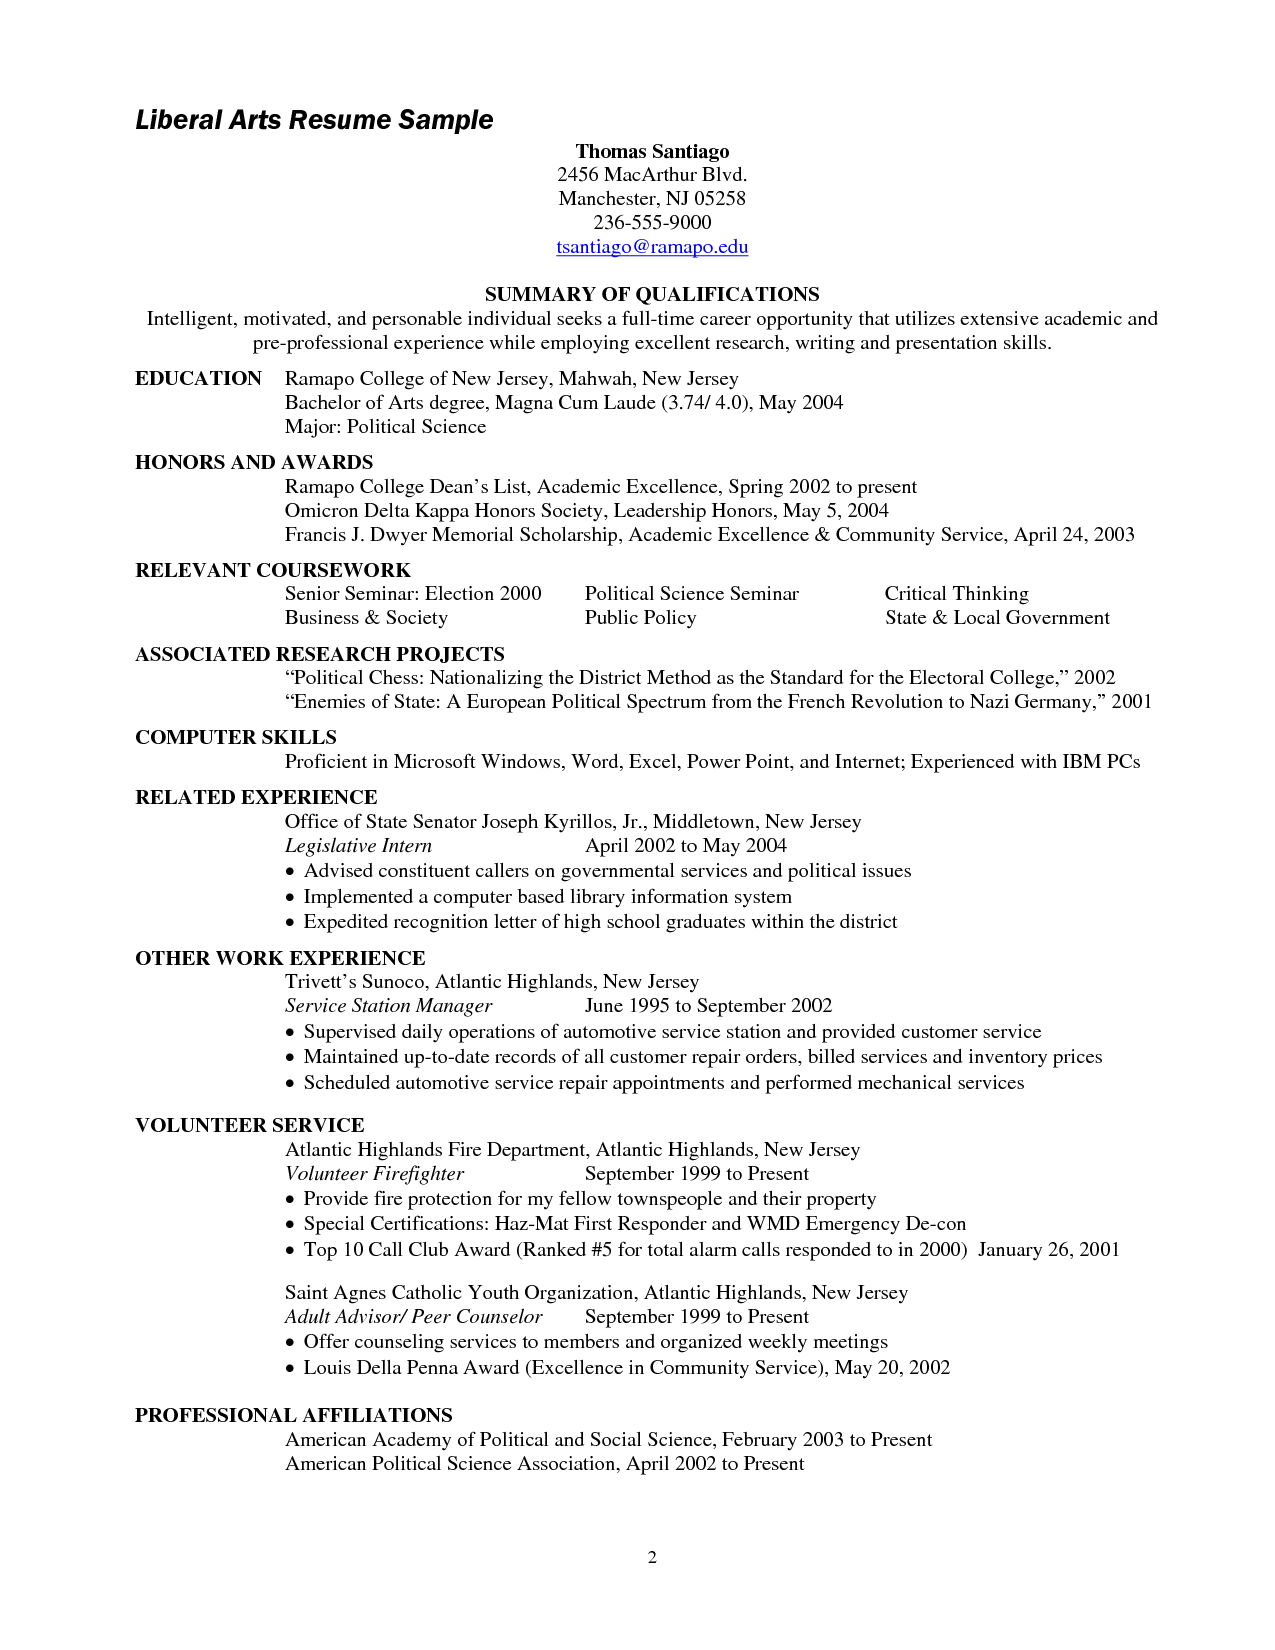 Resume Without College Degree | Resume Samples No College Degree Aa Degree L Pinterest